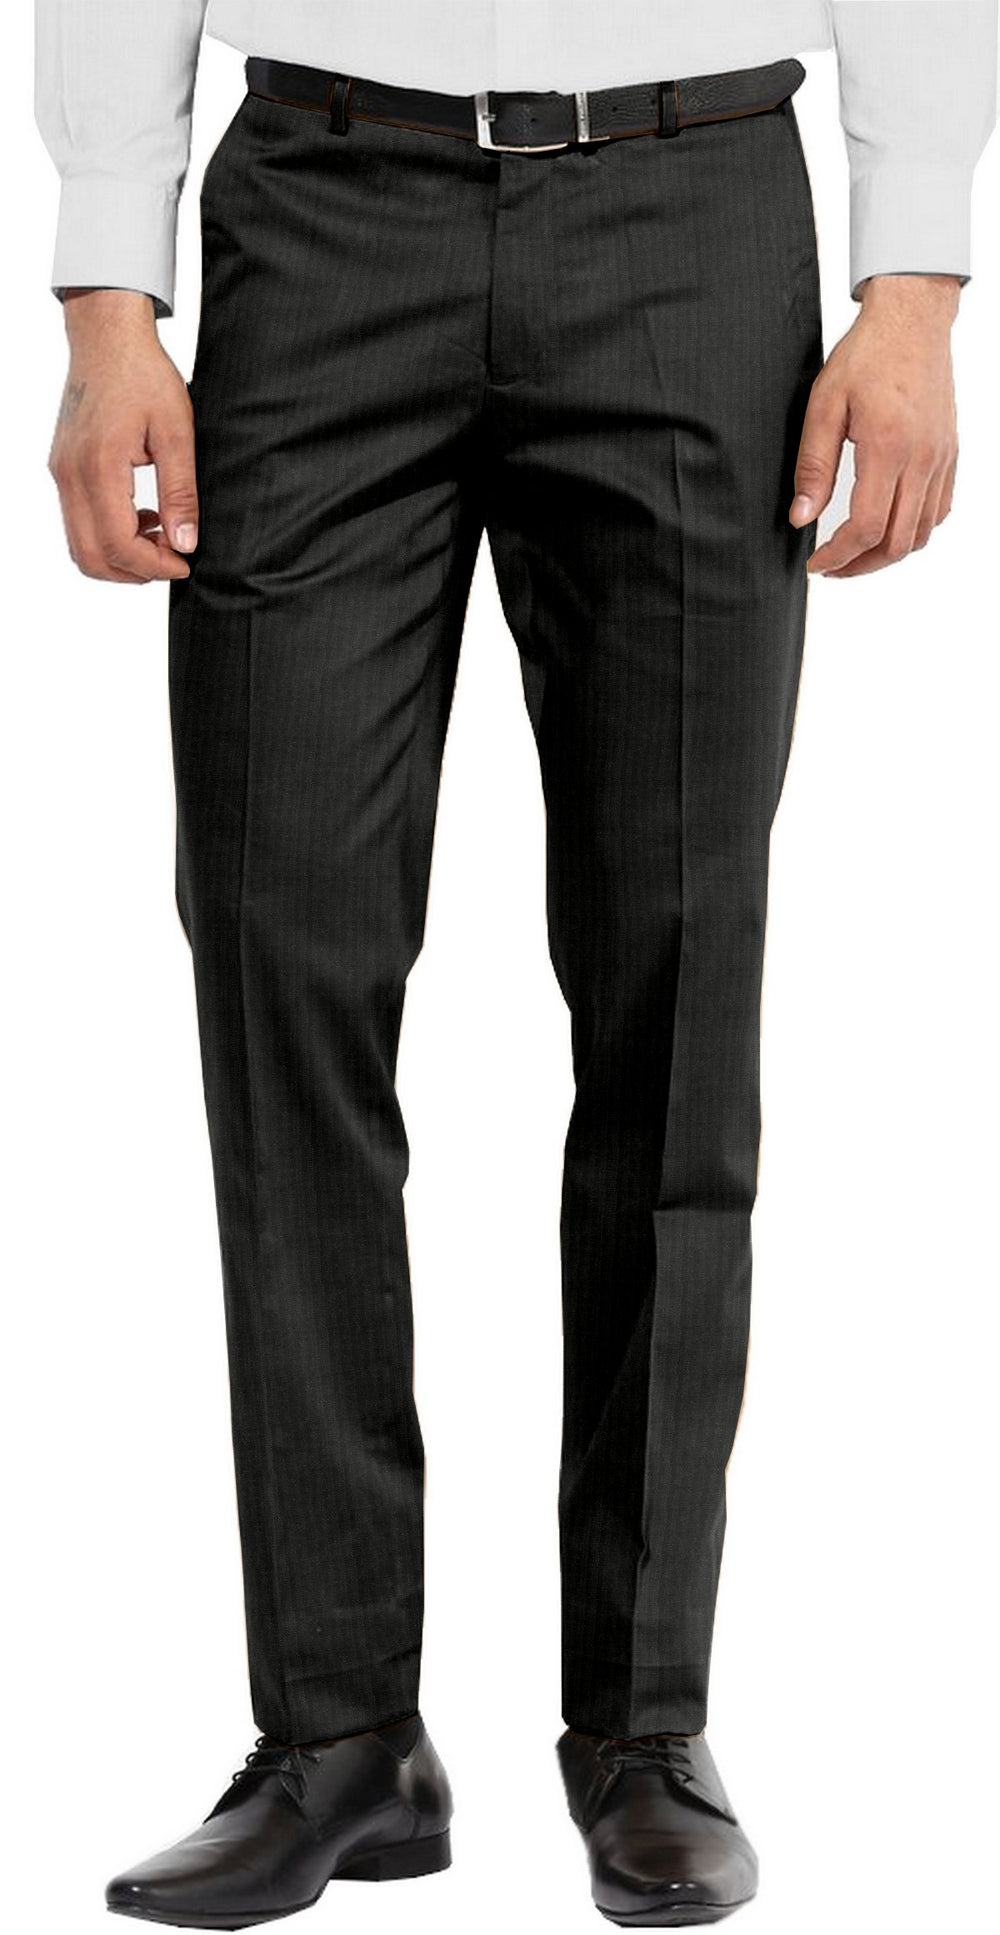 Dugdale Fine Worsted  - Charcoal Self-Stripe Pant